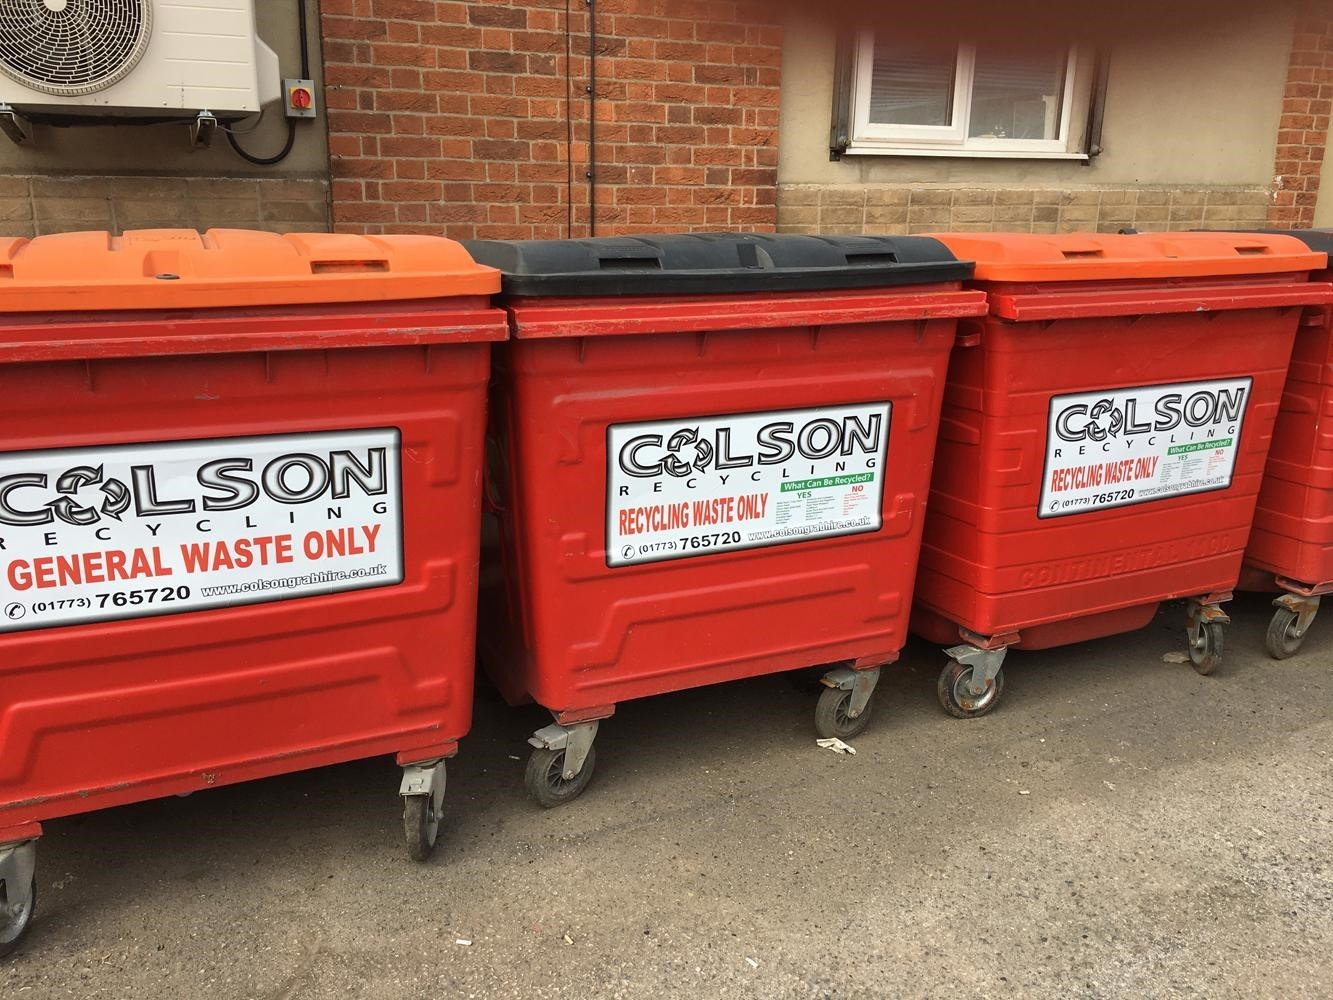 business waste nottingham recycling bins colson transport